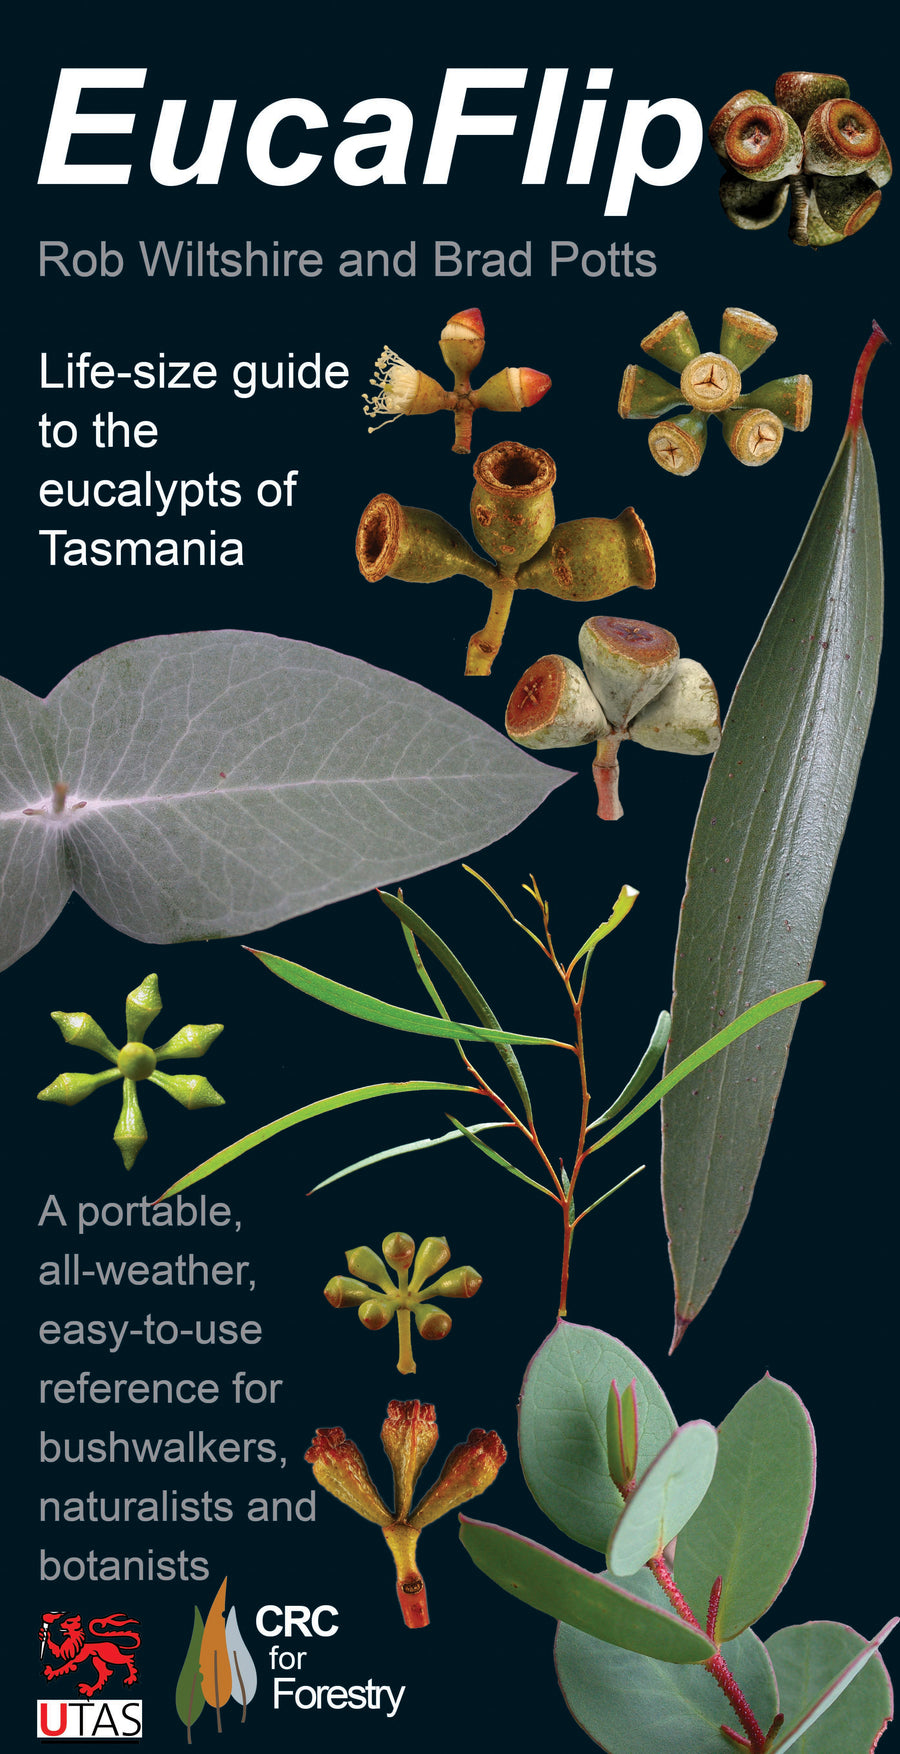 EucaFlip: Life-Sized Guide to the Eucalypts of Tasmania